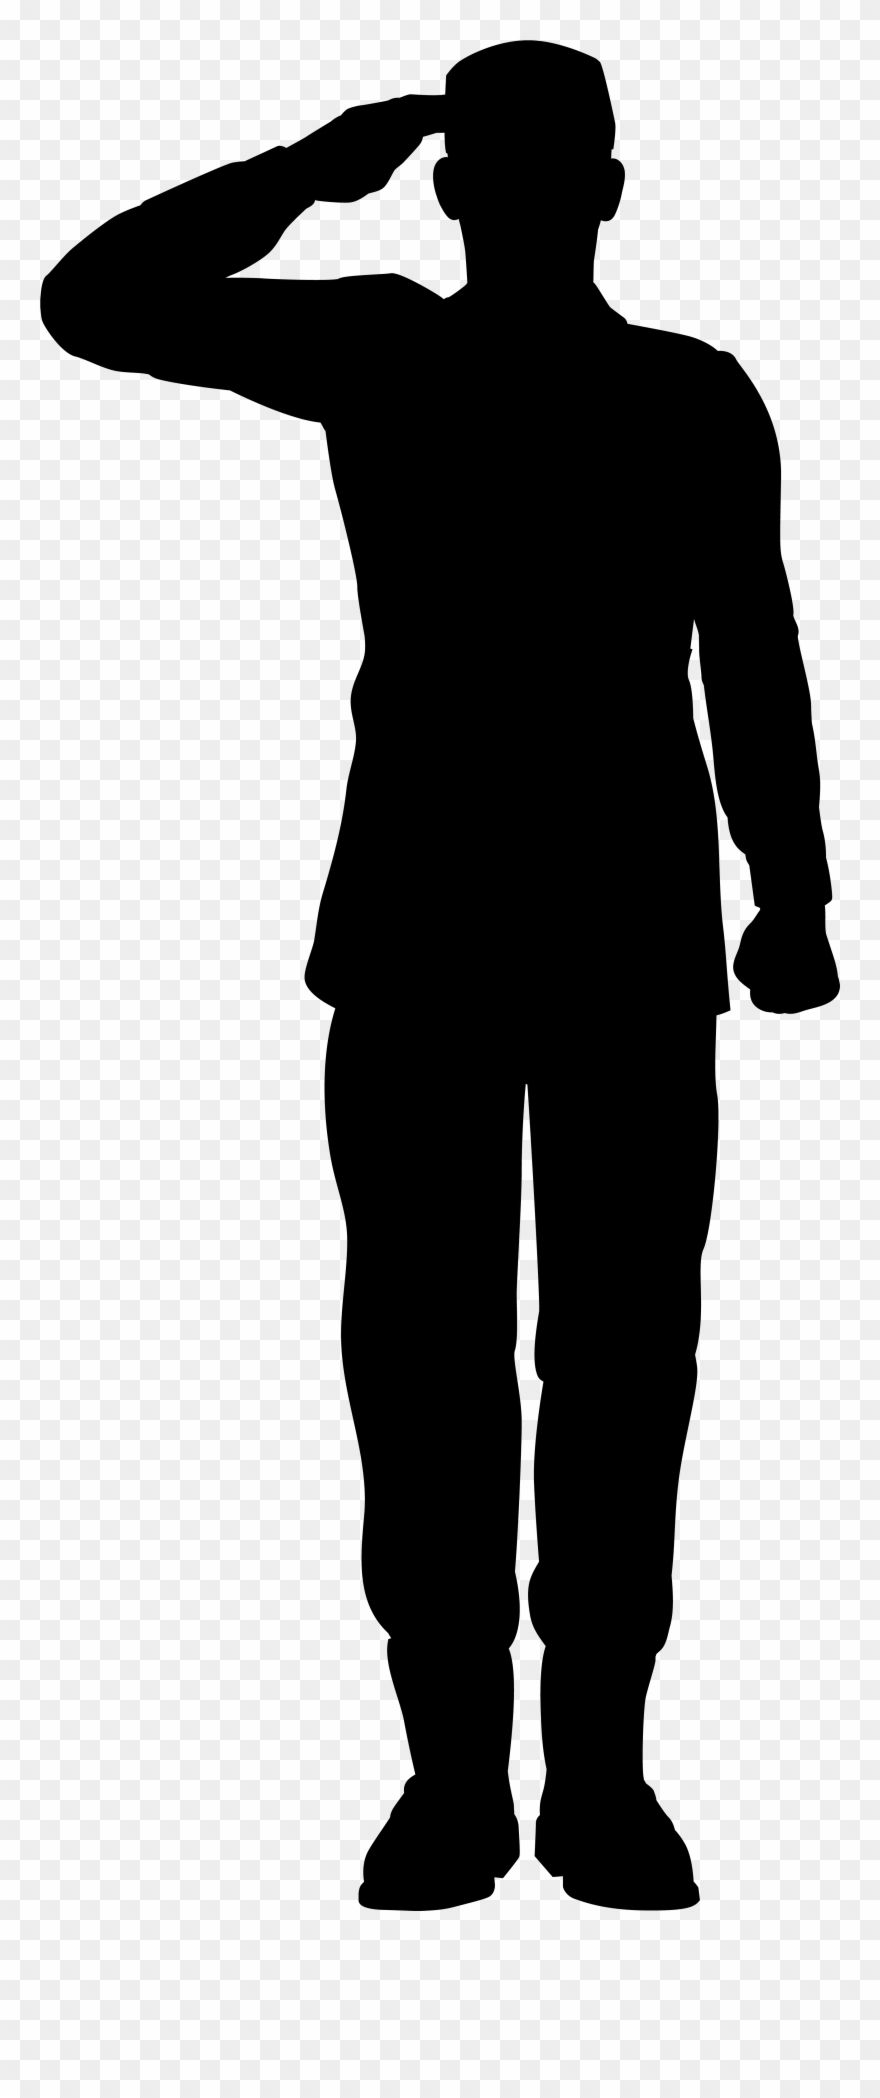 Navy clipart soldier salute. Army saluting silhouette png